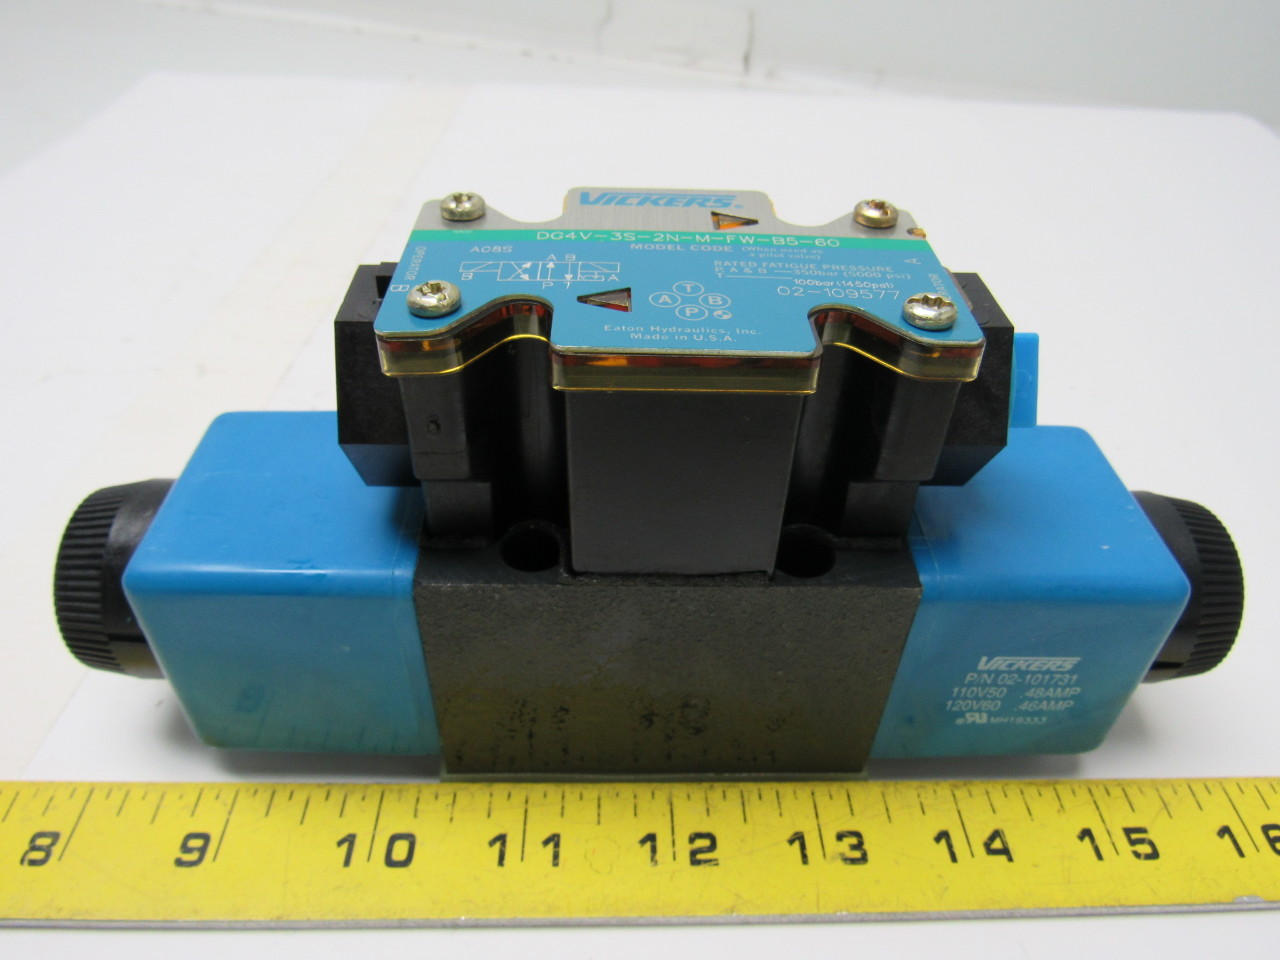 Vickers 02-109577 DG4V-3S-2N-M-FW-B5-60 Hydraulic Directional Control Valve